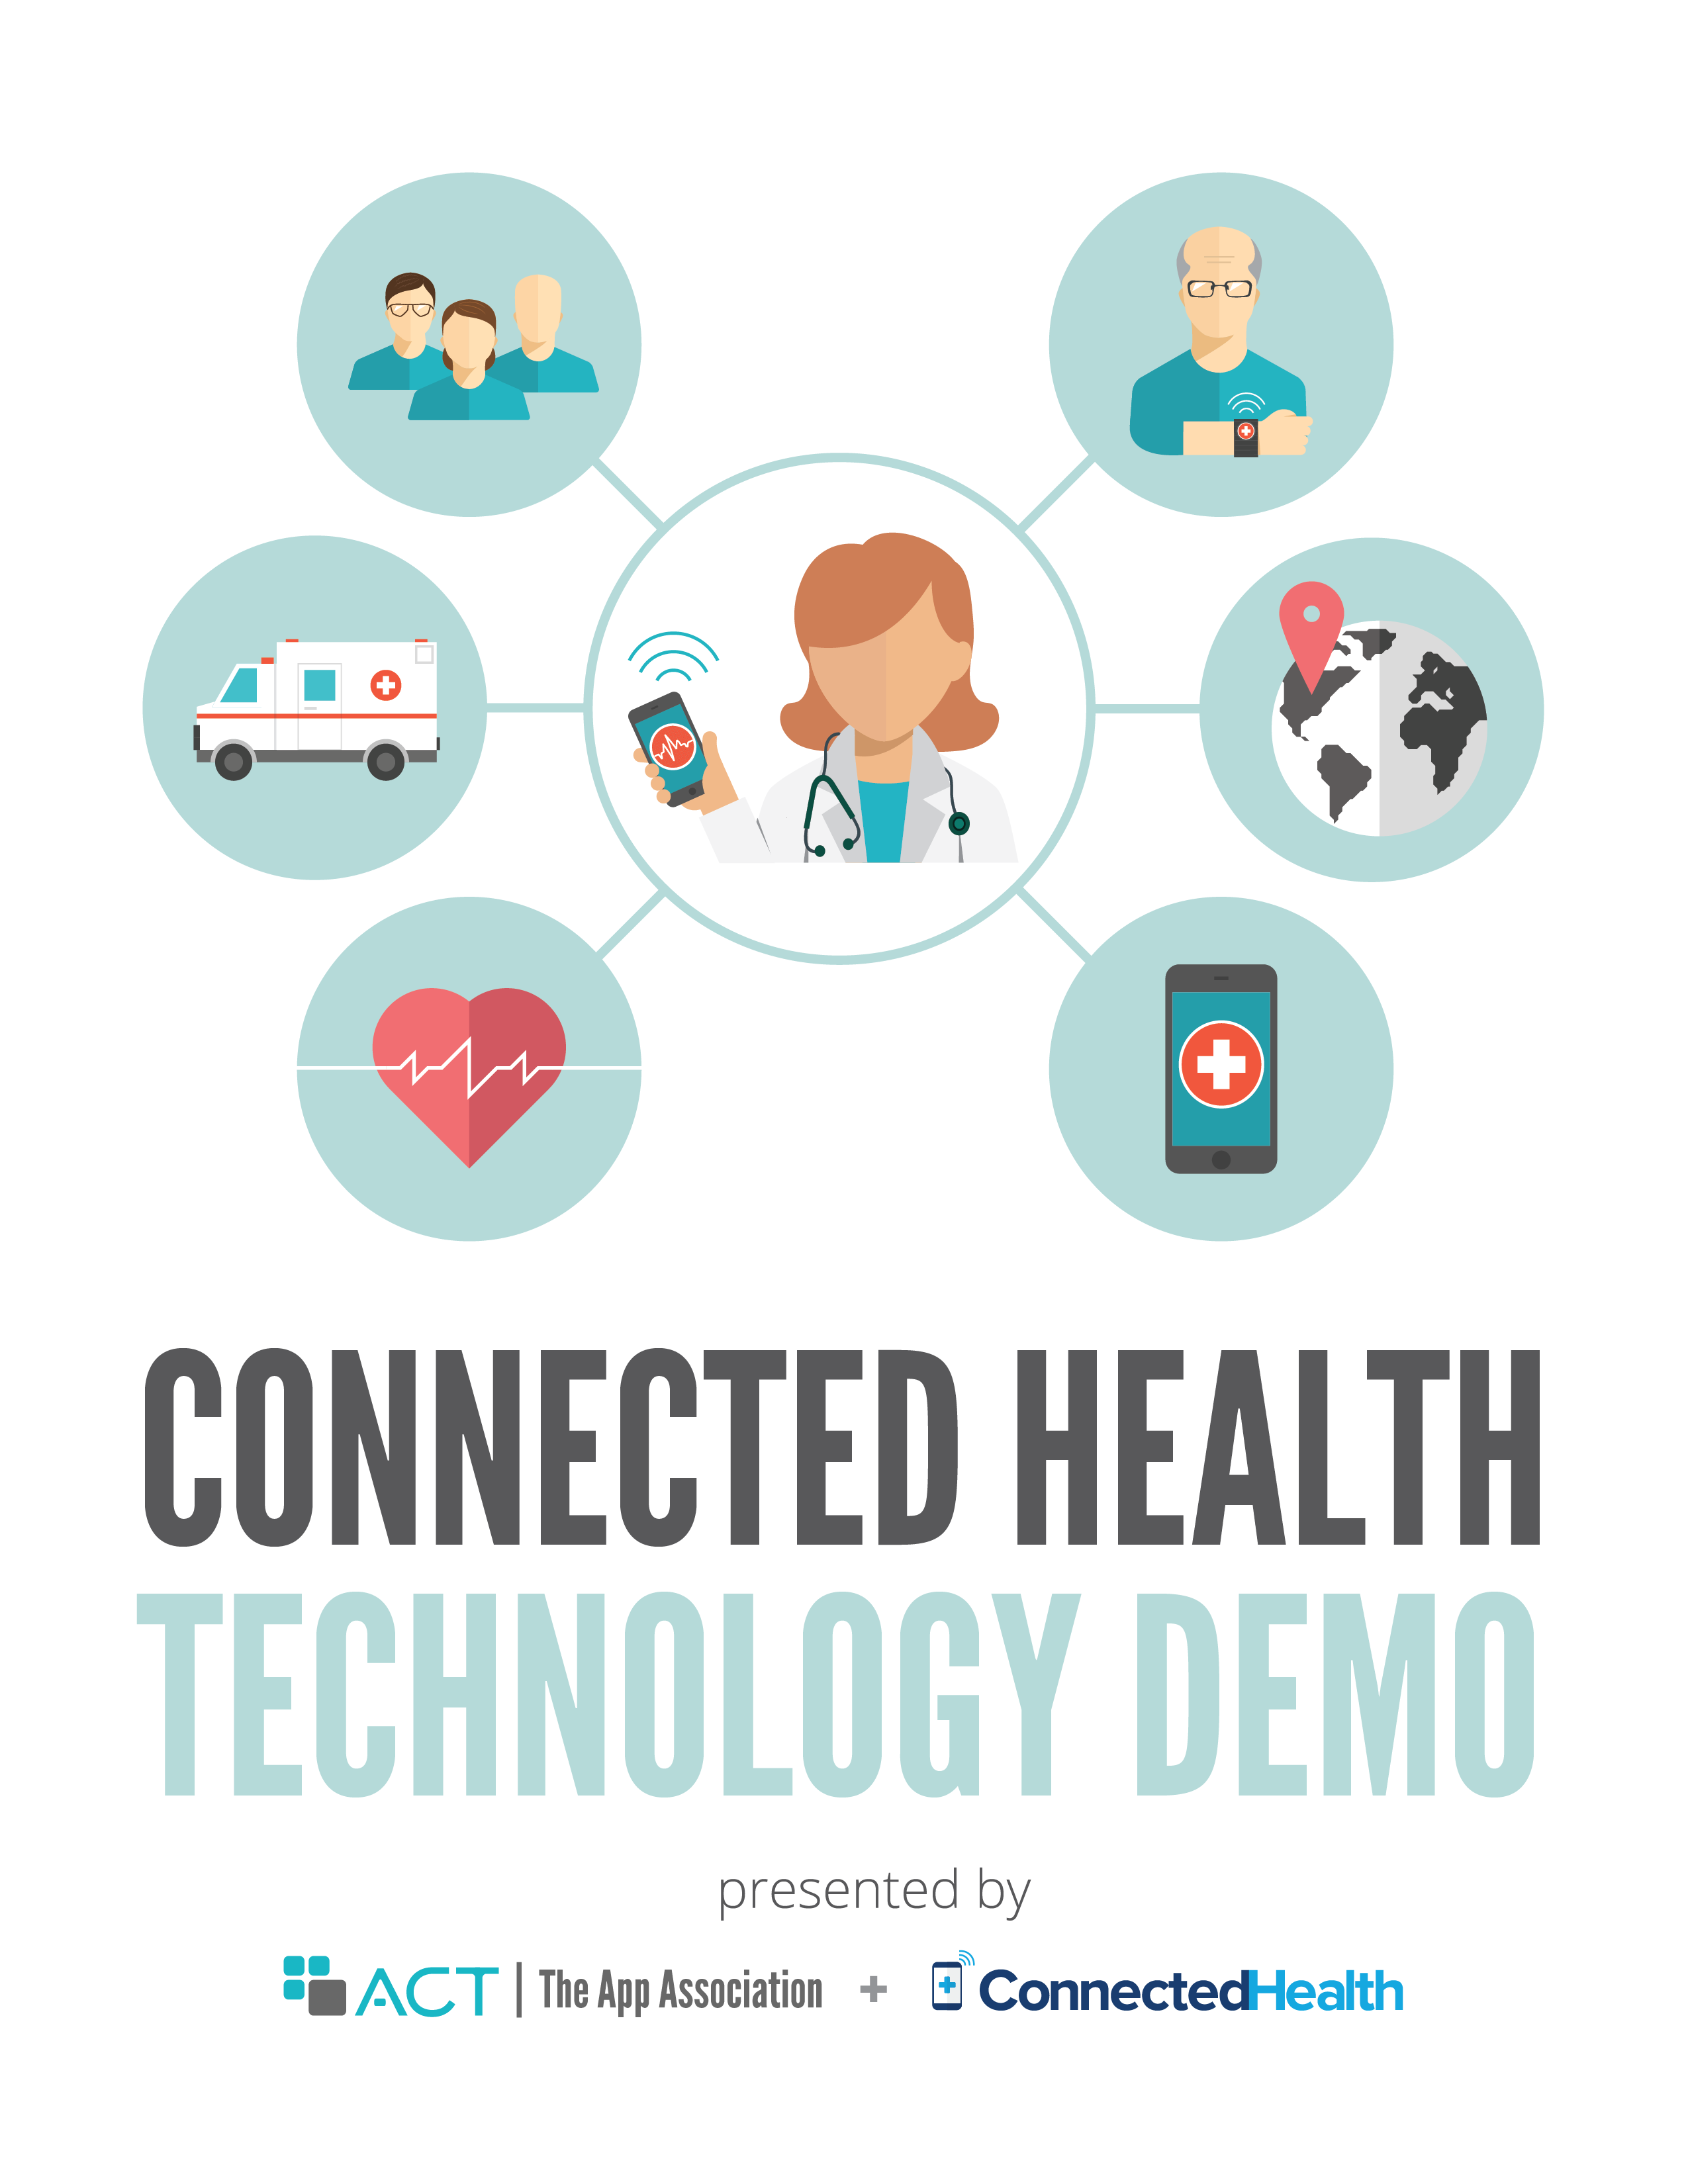 Connected Health Technology Demo